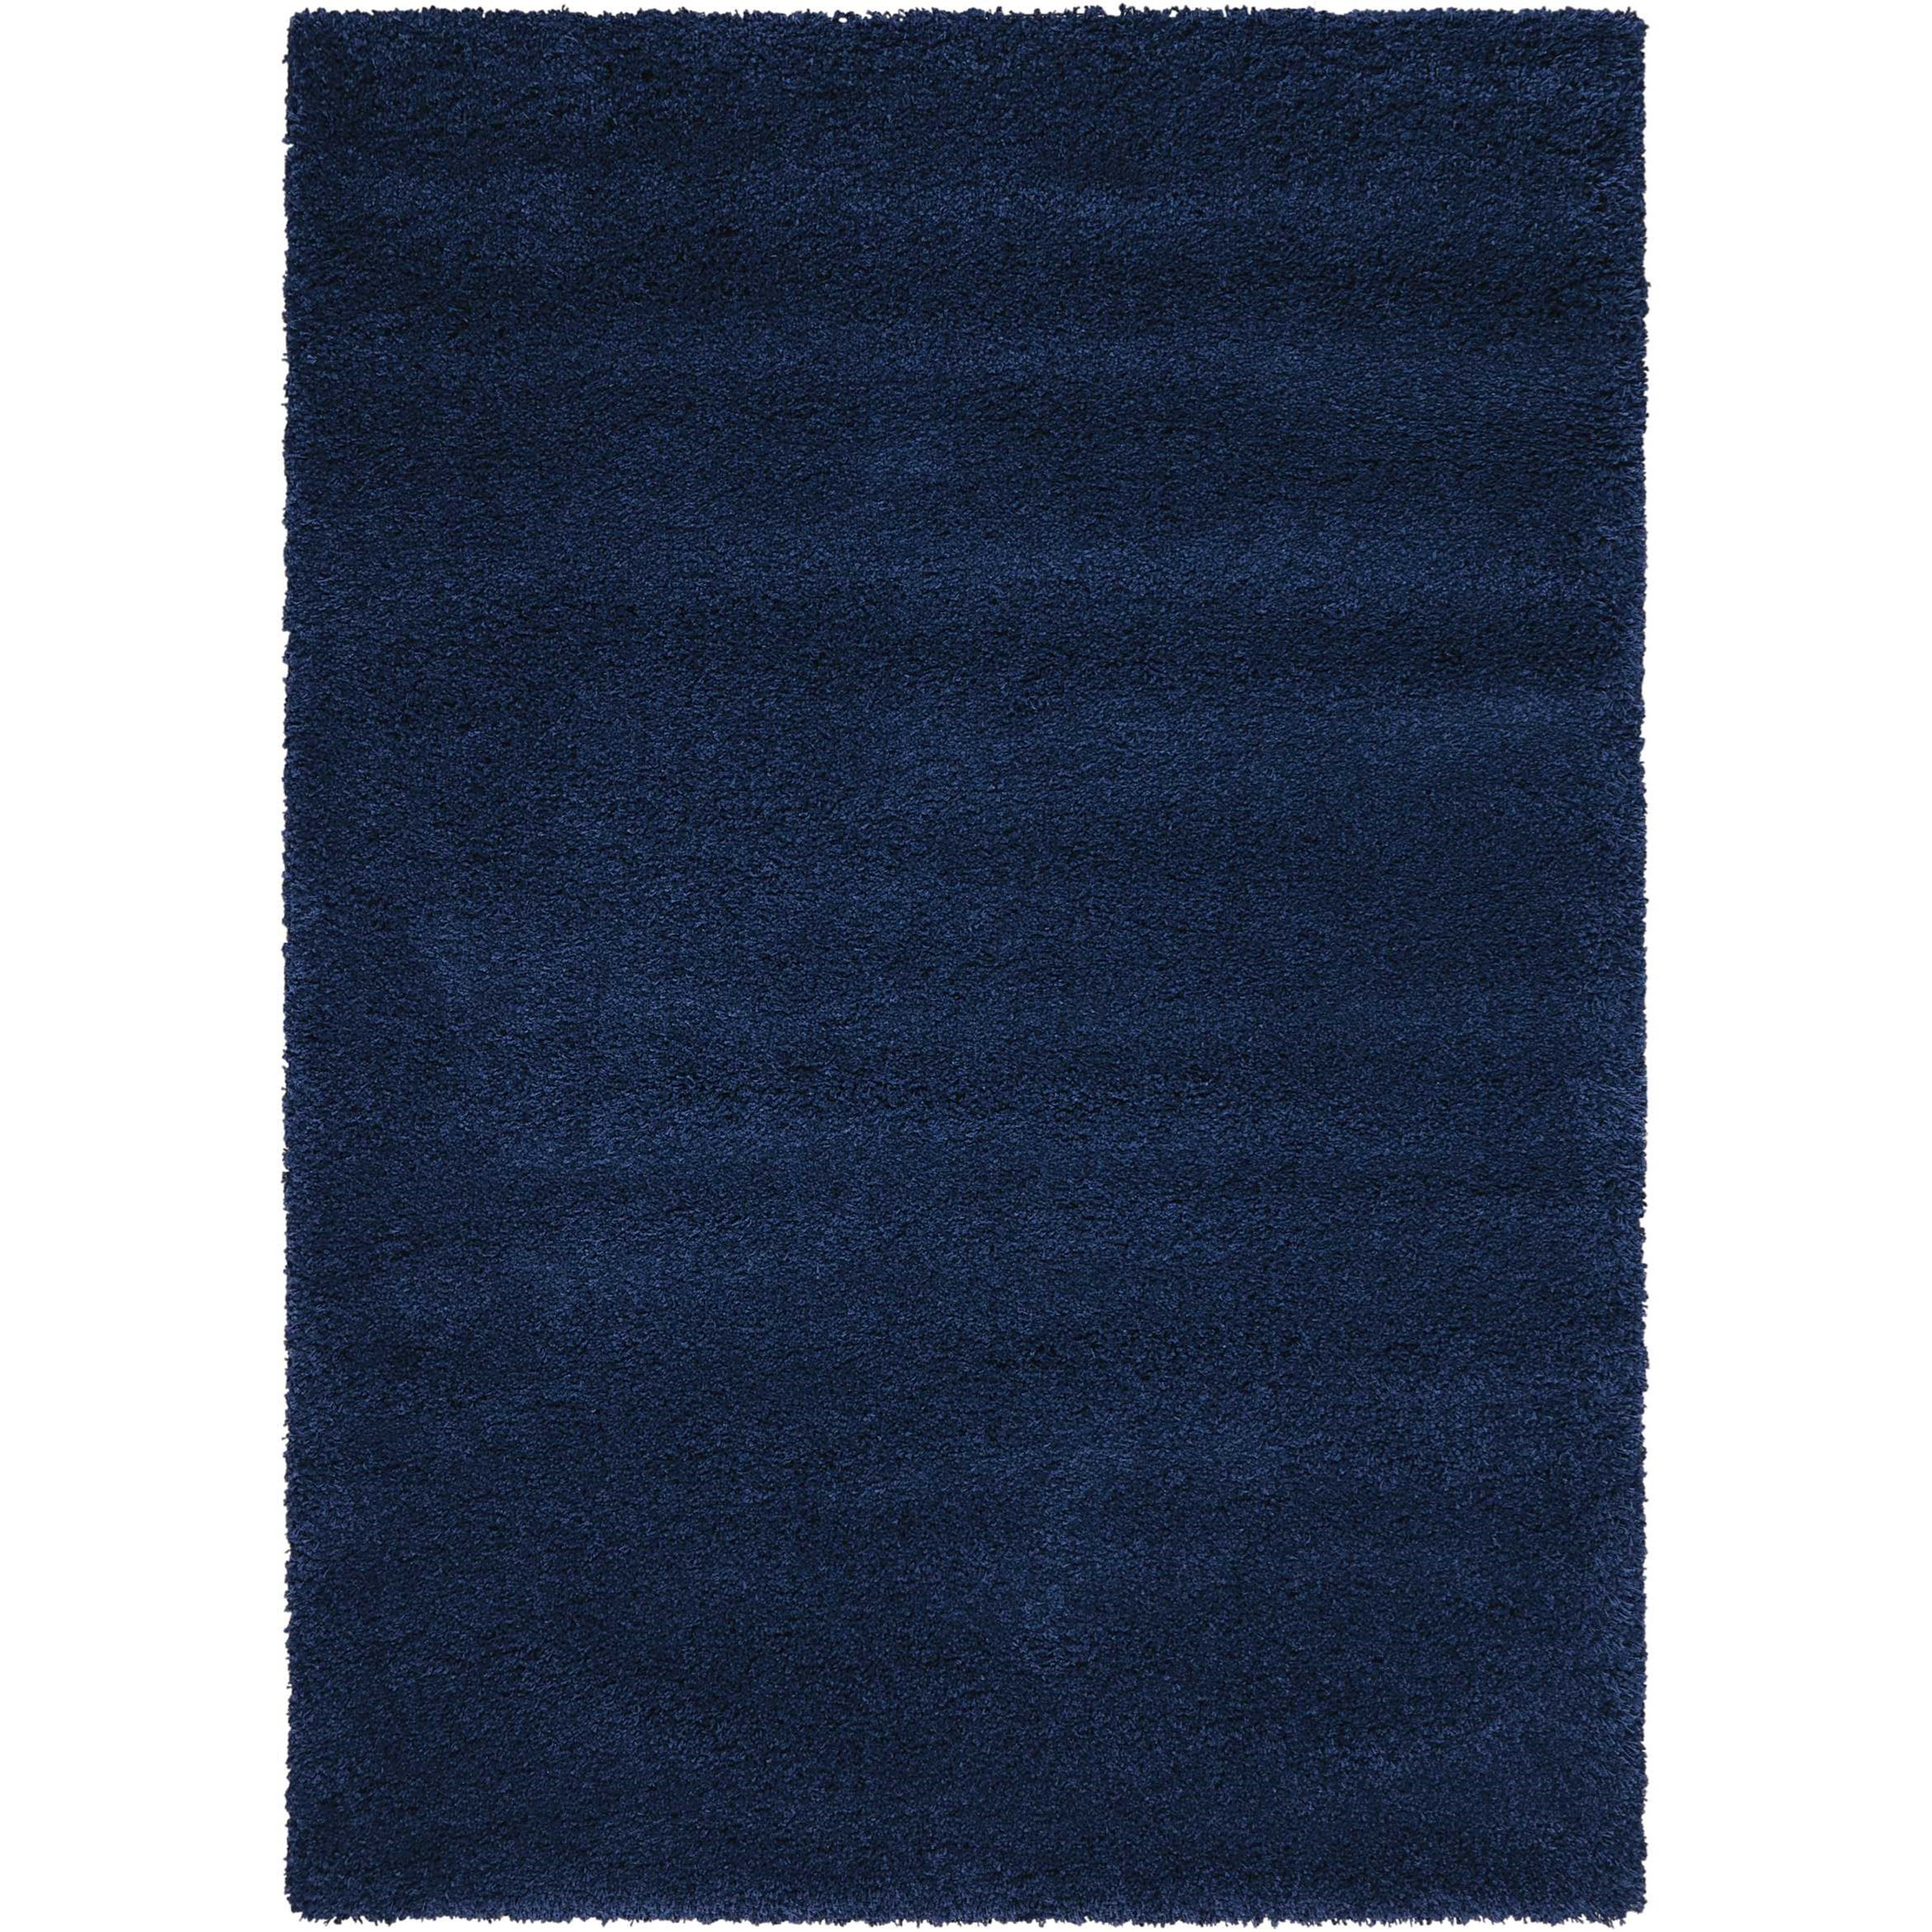 "Amore 7'10"" x 10'10"" Ink Rectangle Rug by Nourison at Home Collections Furniture"